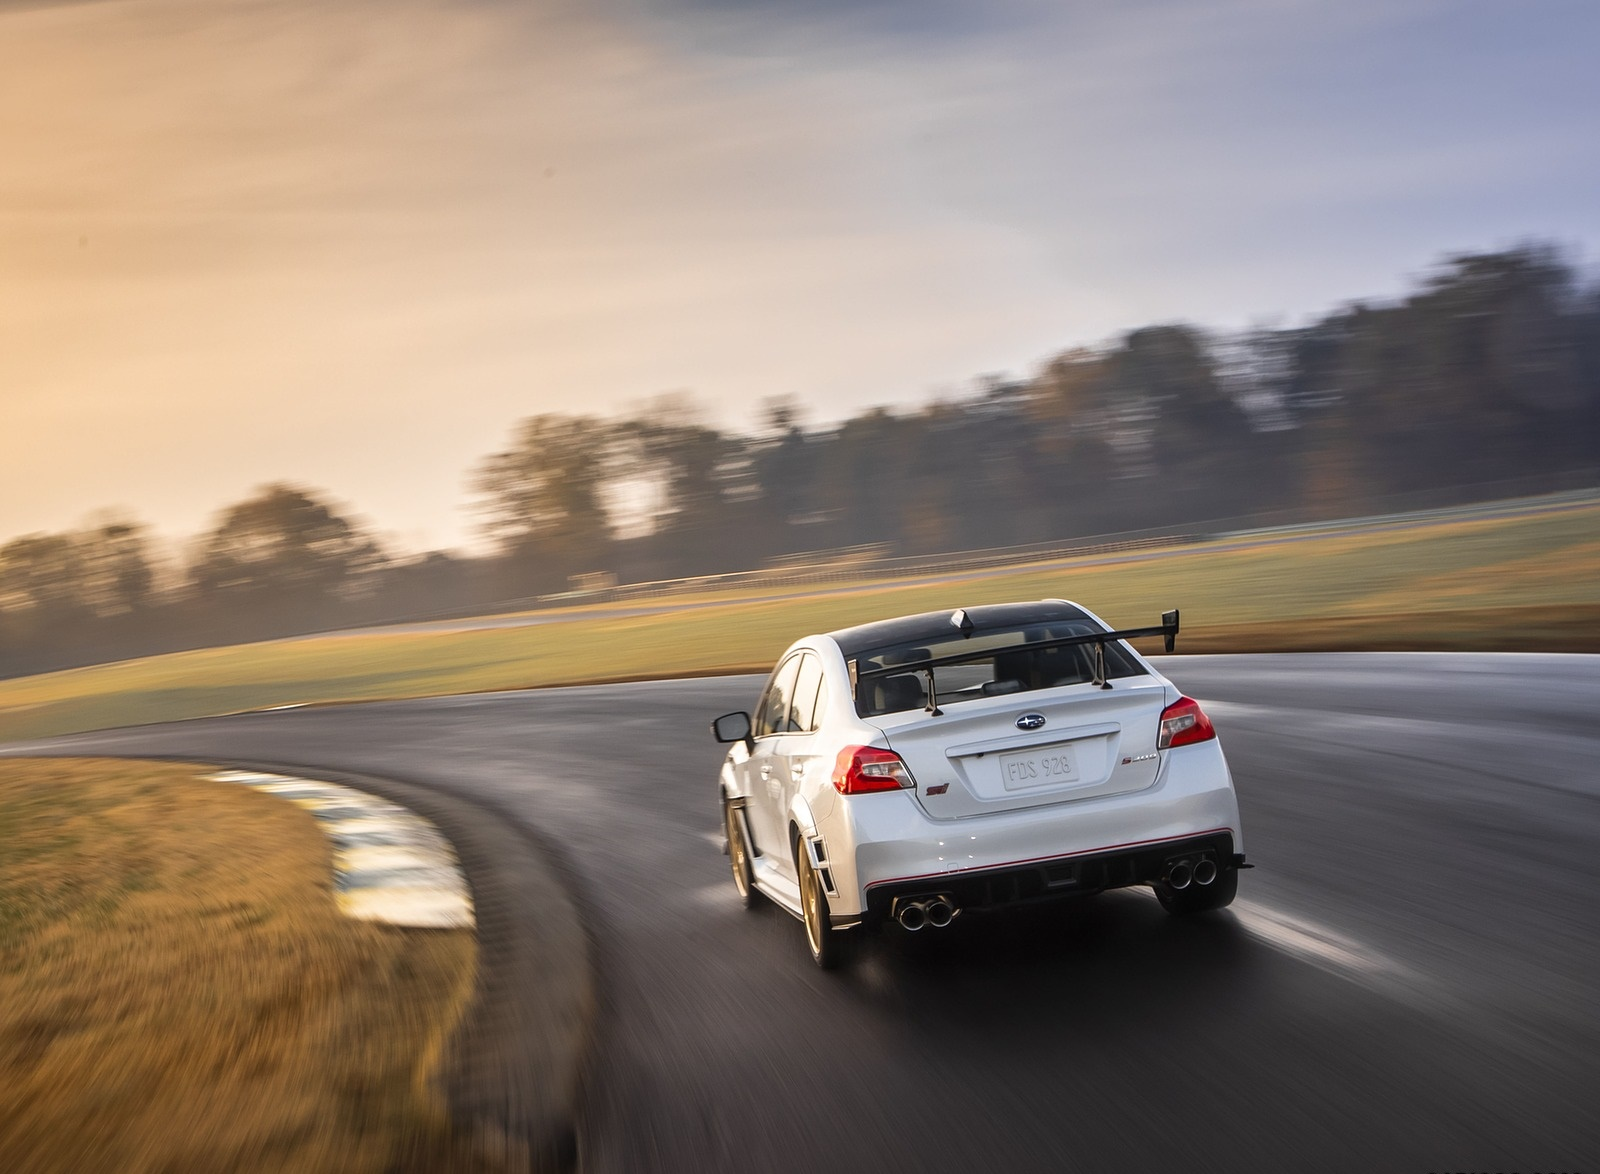 2019 Subaru WRX STI S209 Rear Wallpapers (7)